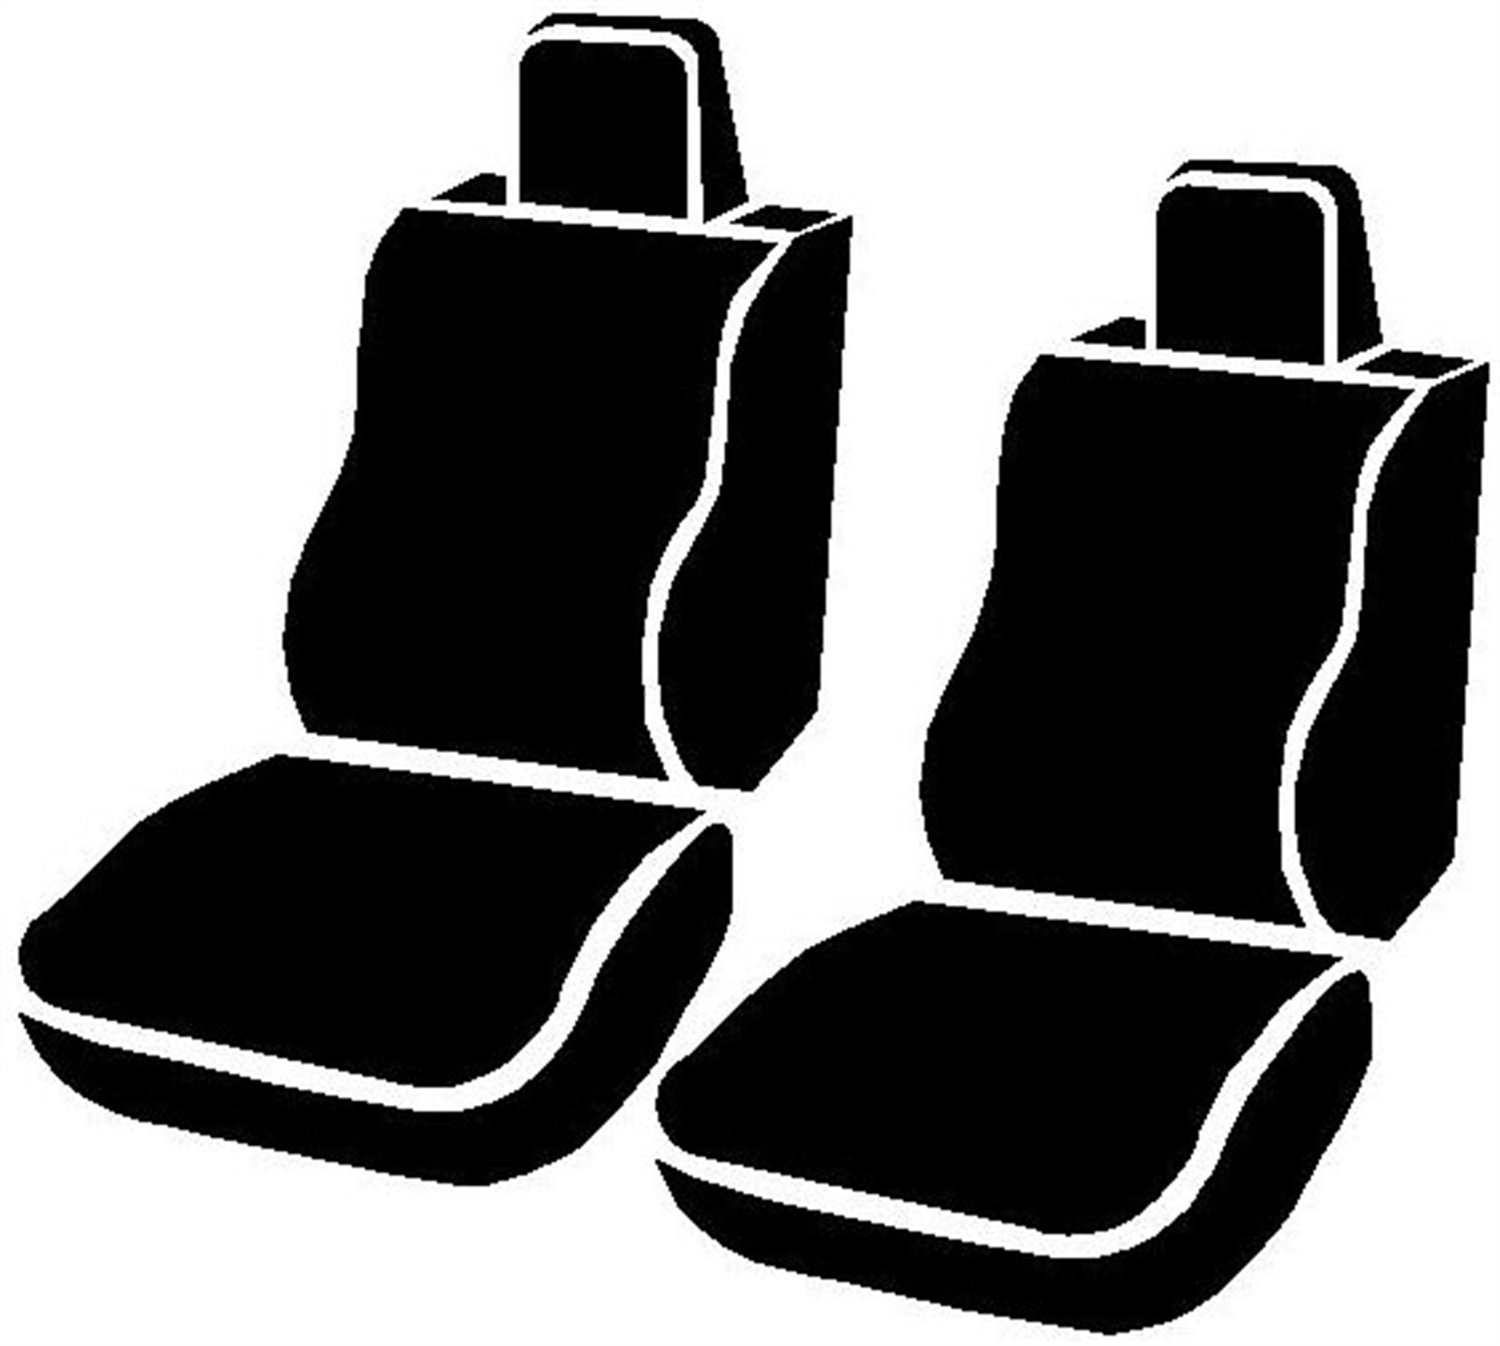 Leatherette Fia SL67-18 GRAY Custom Fit Front Seat Cover Bucket Seats Black w//Gray Center Panel